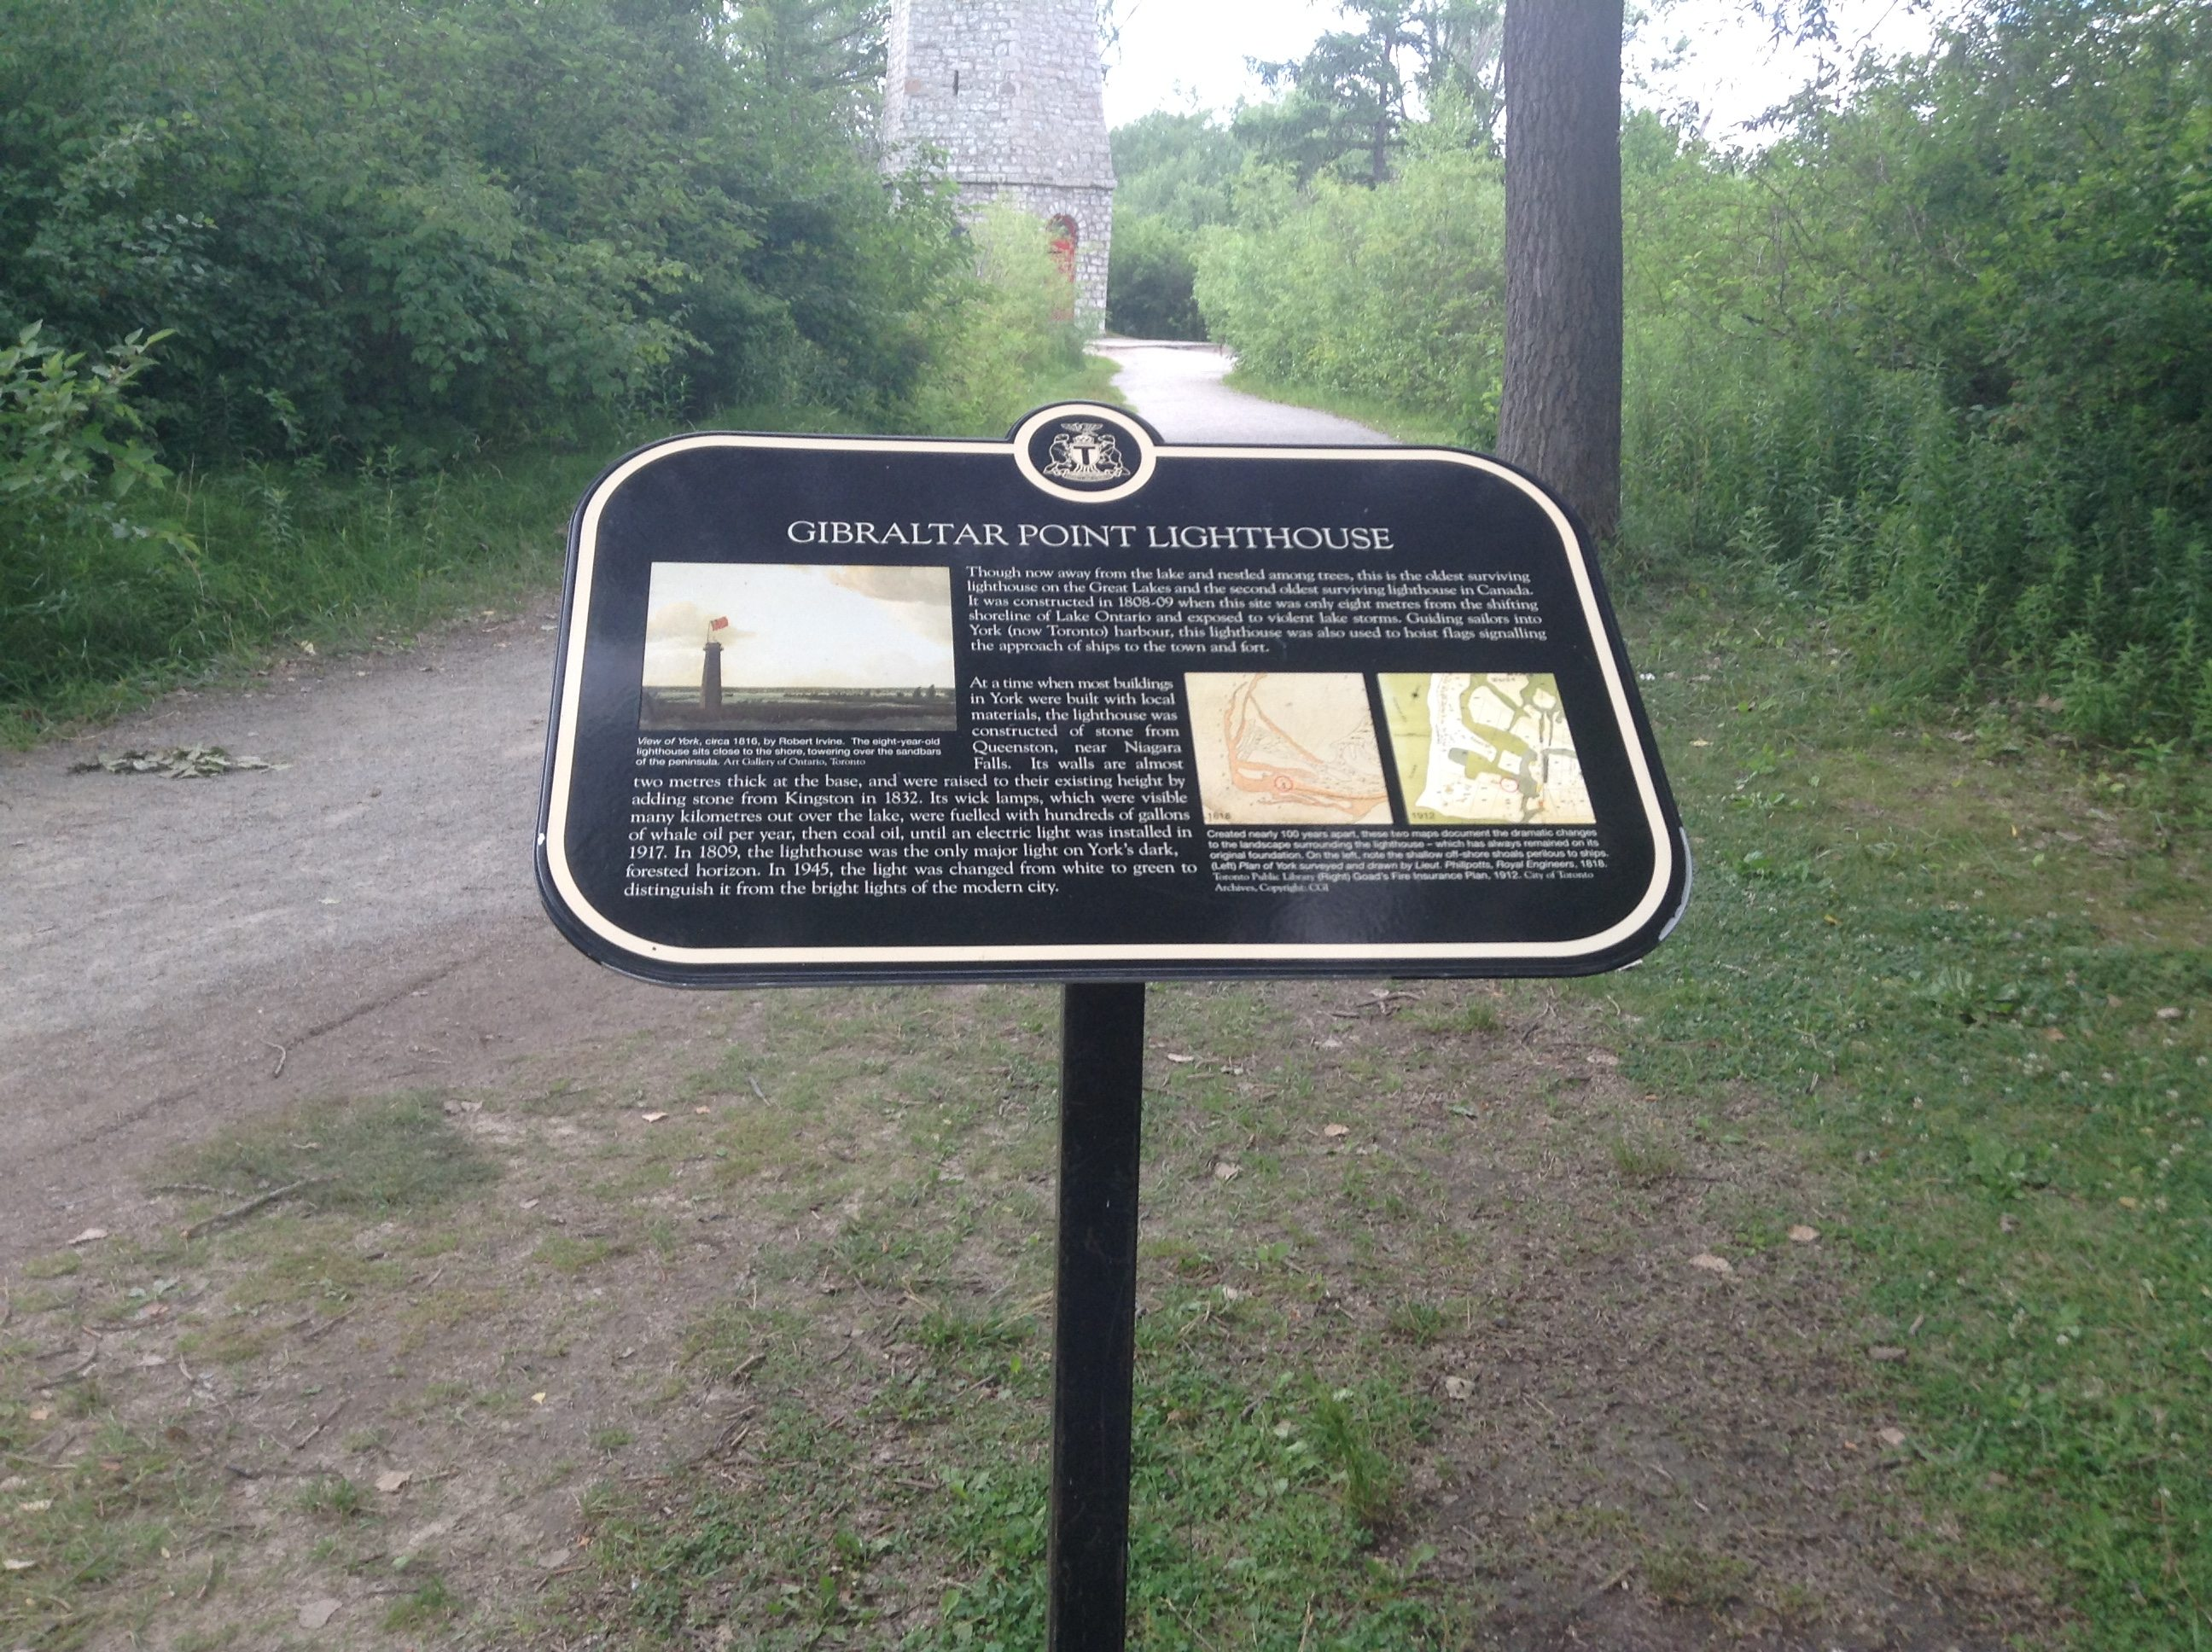 The first of two 2008 Heritage Toronto plaques at the site of the lighthouse. Photo by Erin Sylvester.